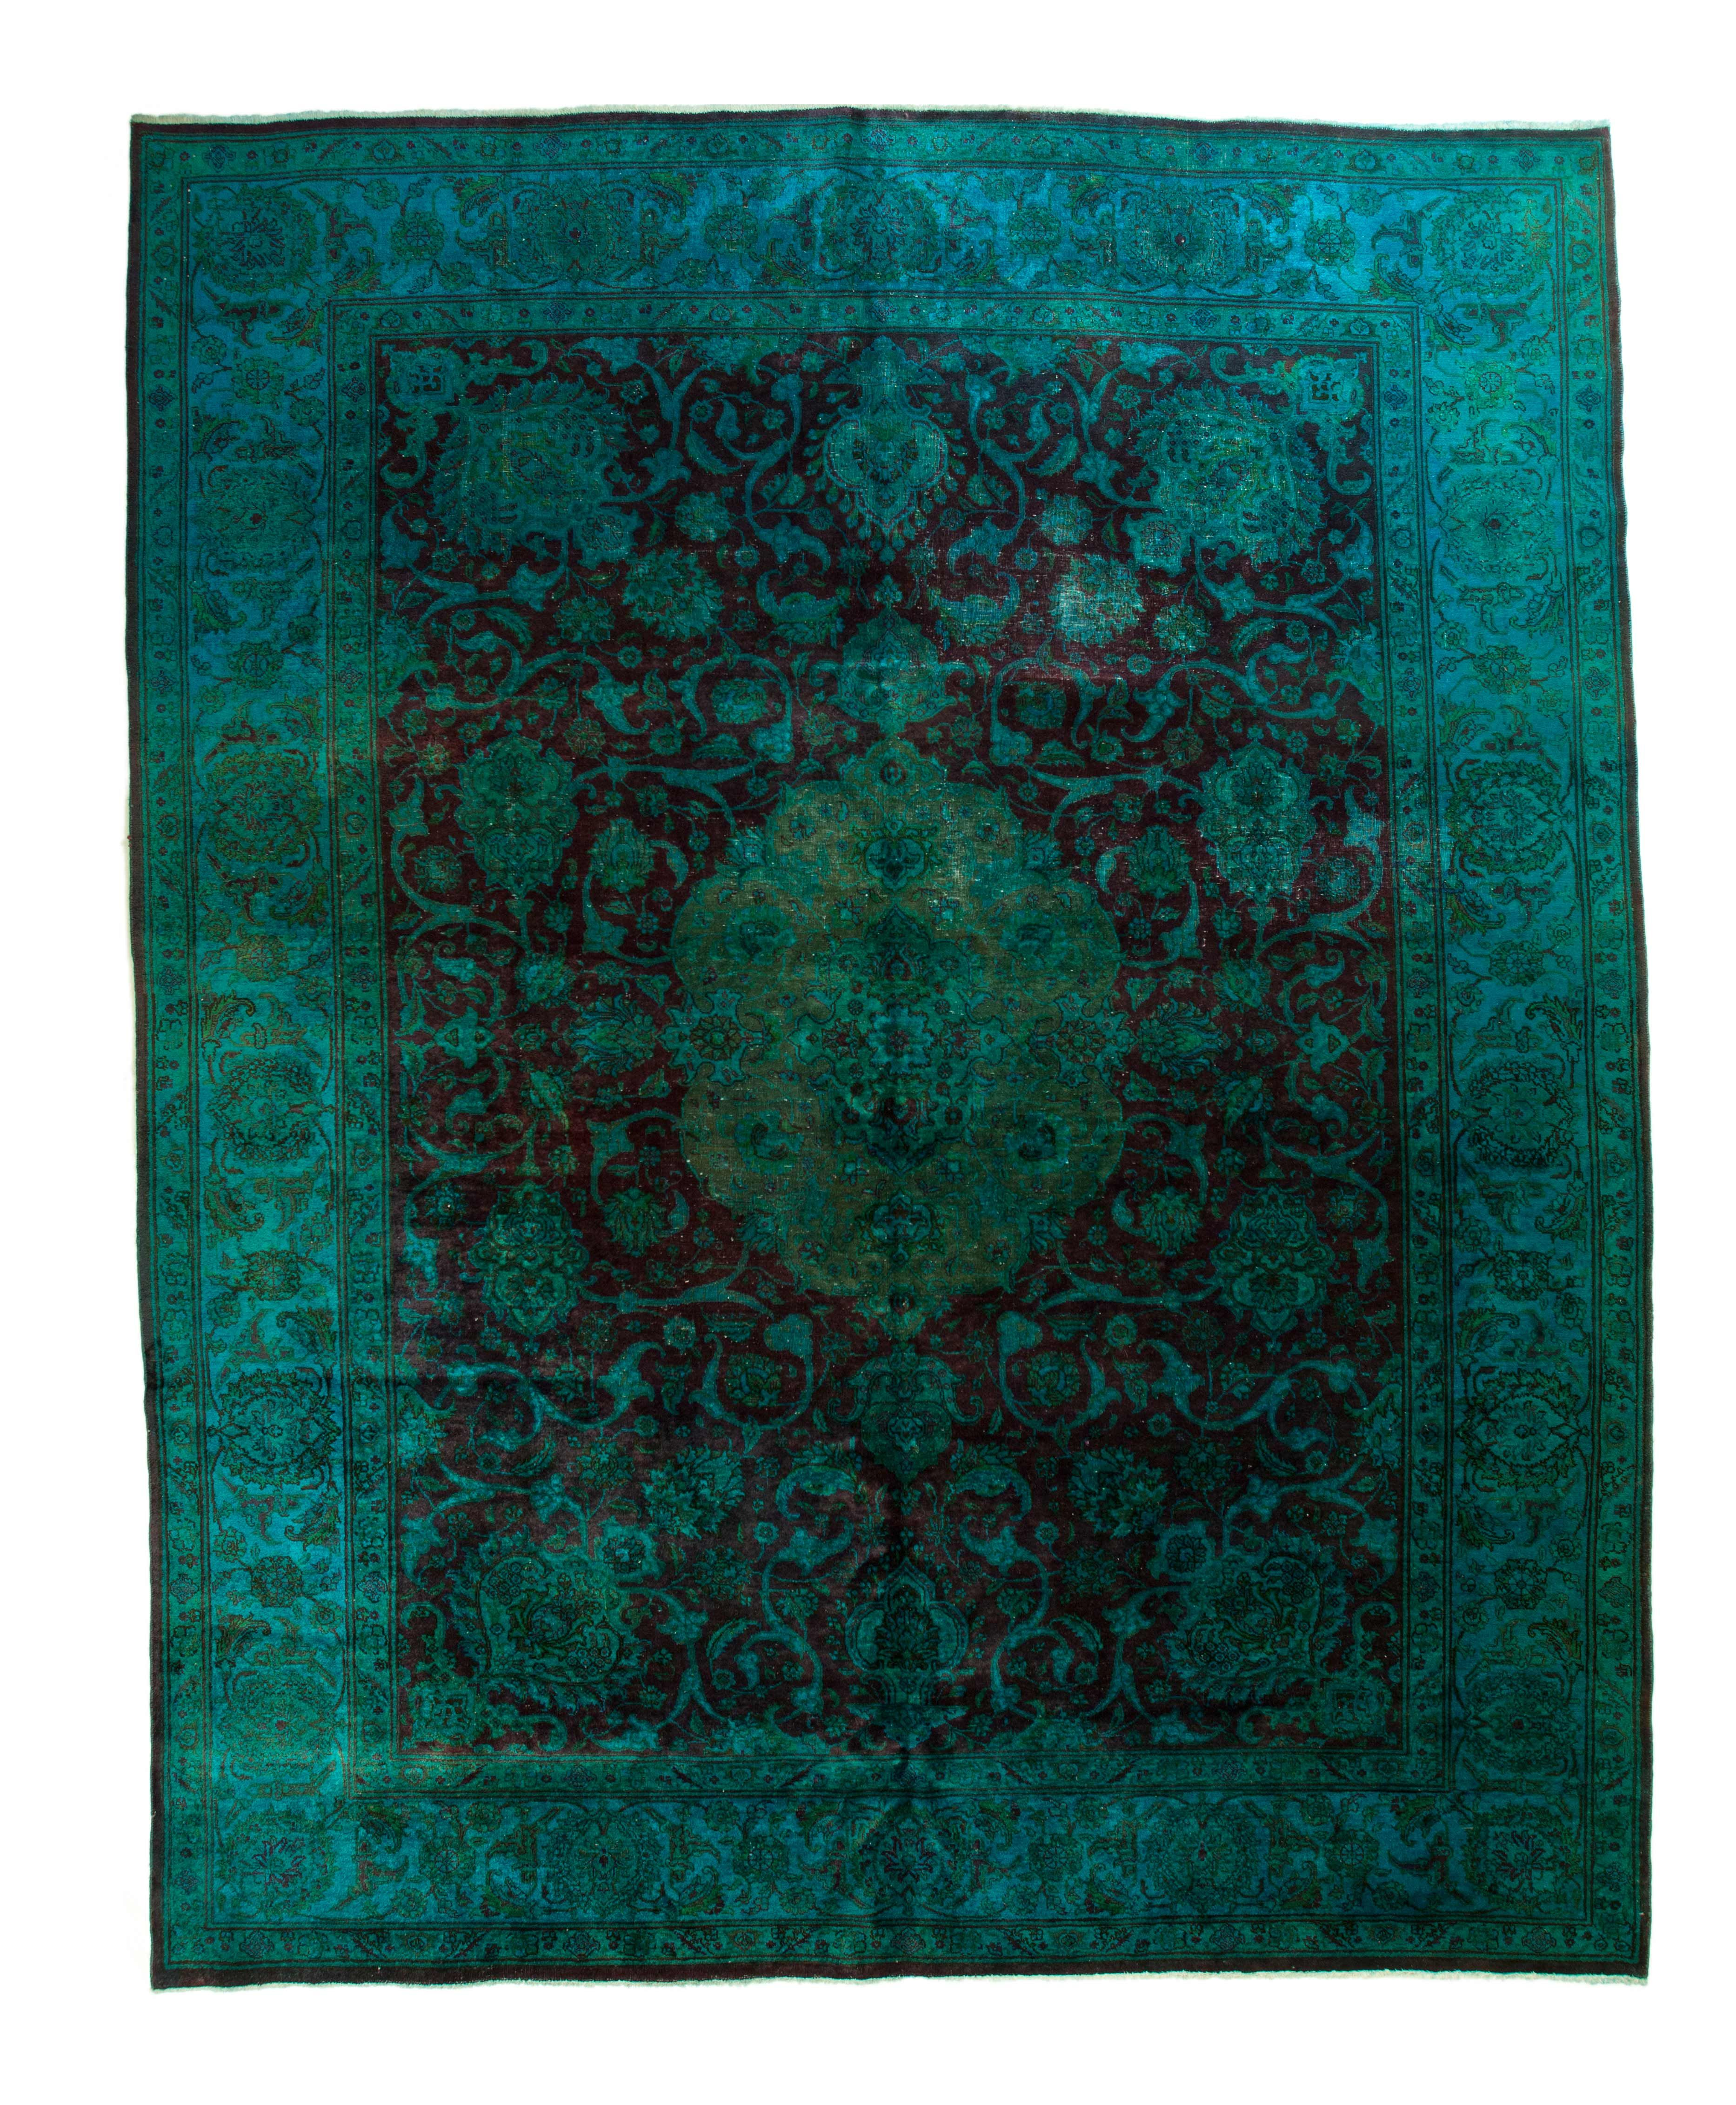 10×12 Overdyed Persian Tabriz Wine Teal Rug 2553